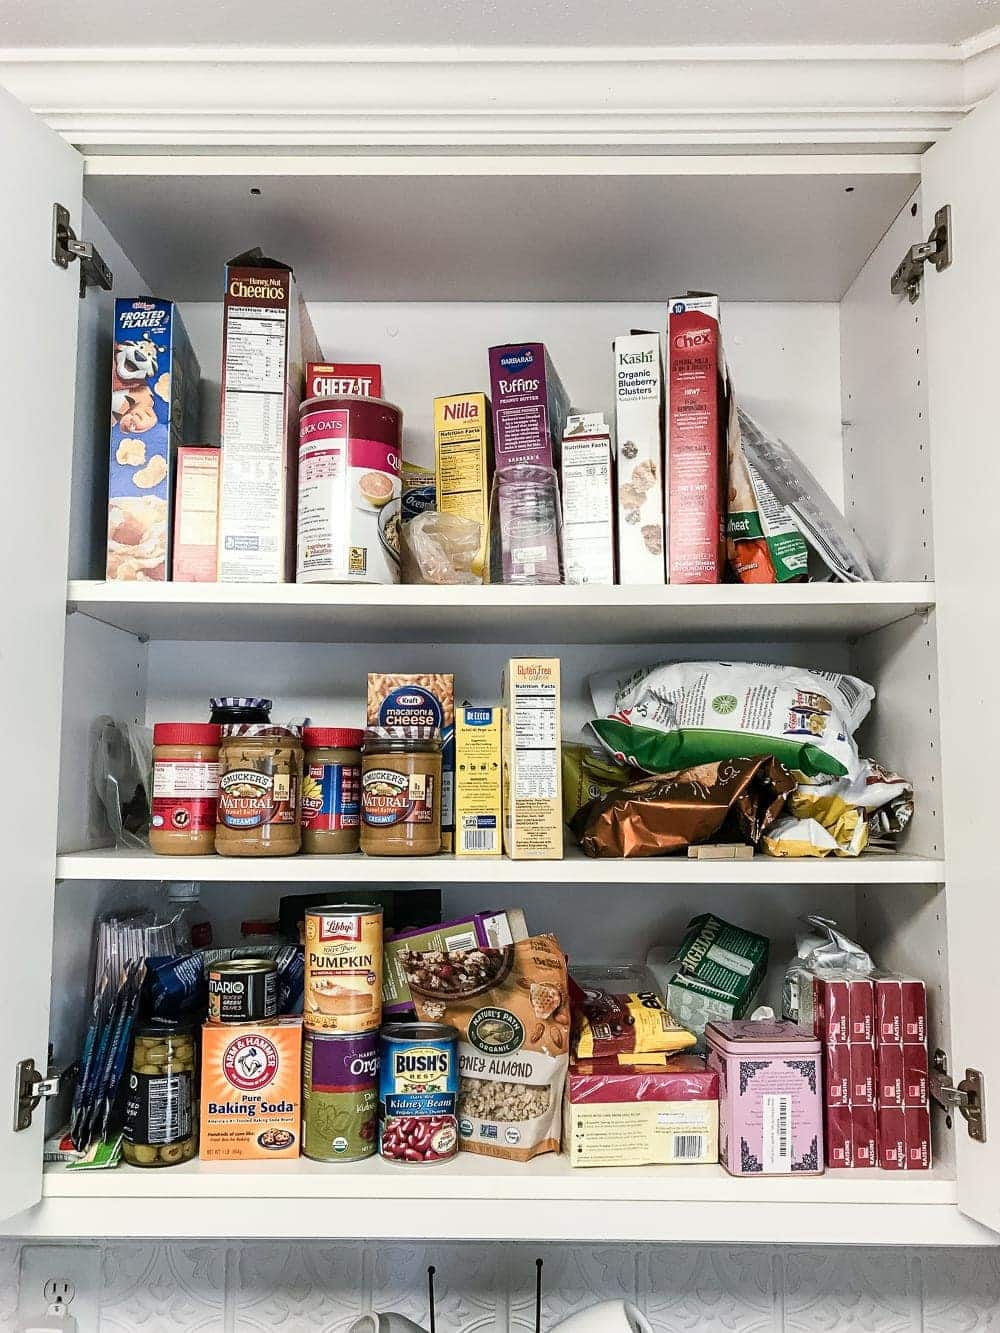 Pantry Cabinet Organization and Free Printable Label Set | blesserhouse.com - A cabinet gets a drastic organization makeover using inexpensive IKEA jars / baskets, hanging storage, and a free pantry label printable set. #organization